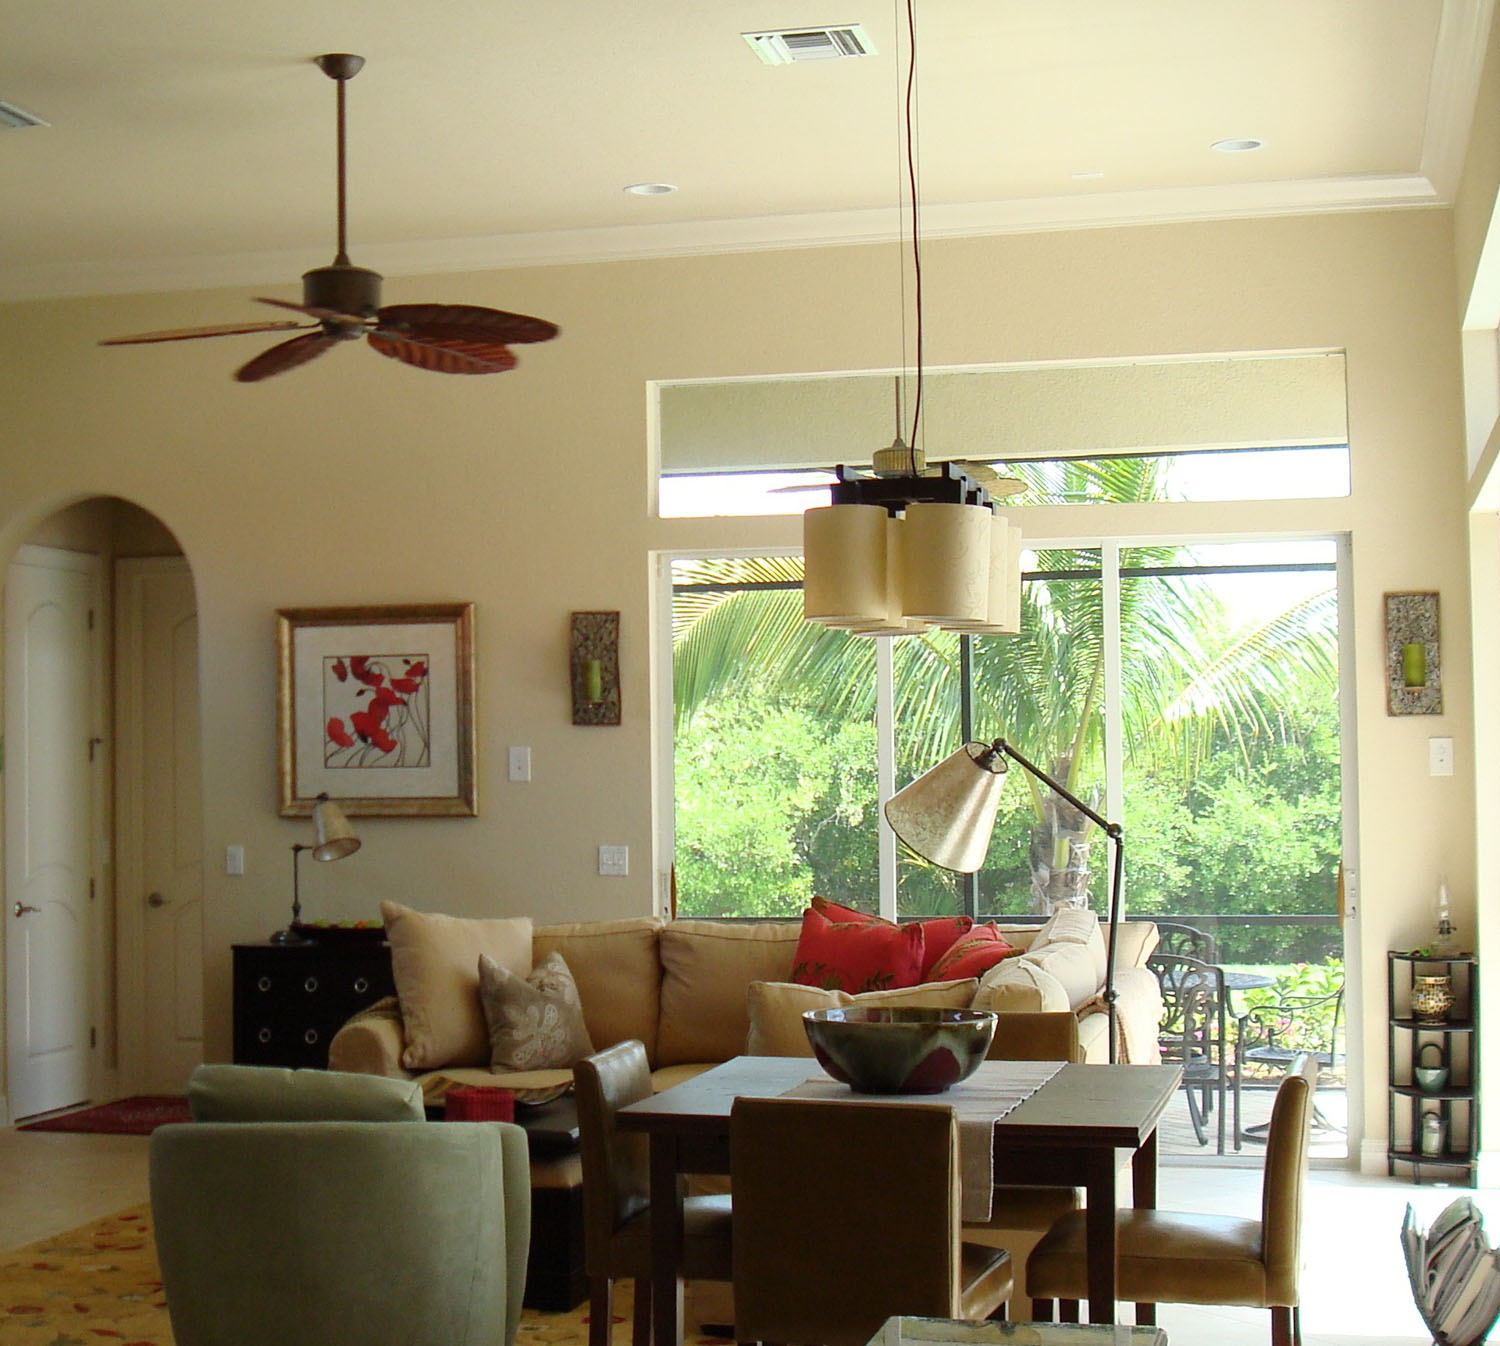 family-room-redesign-project-after-3-1500px.jpg